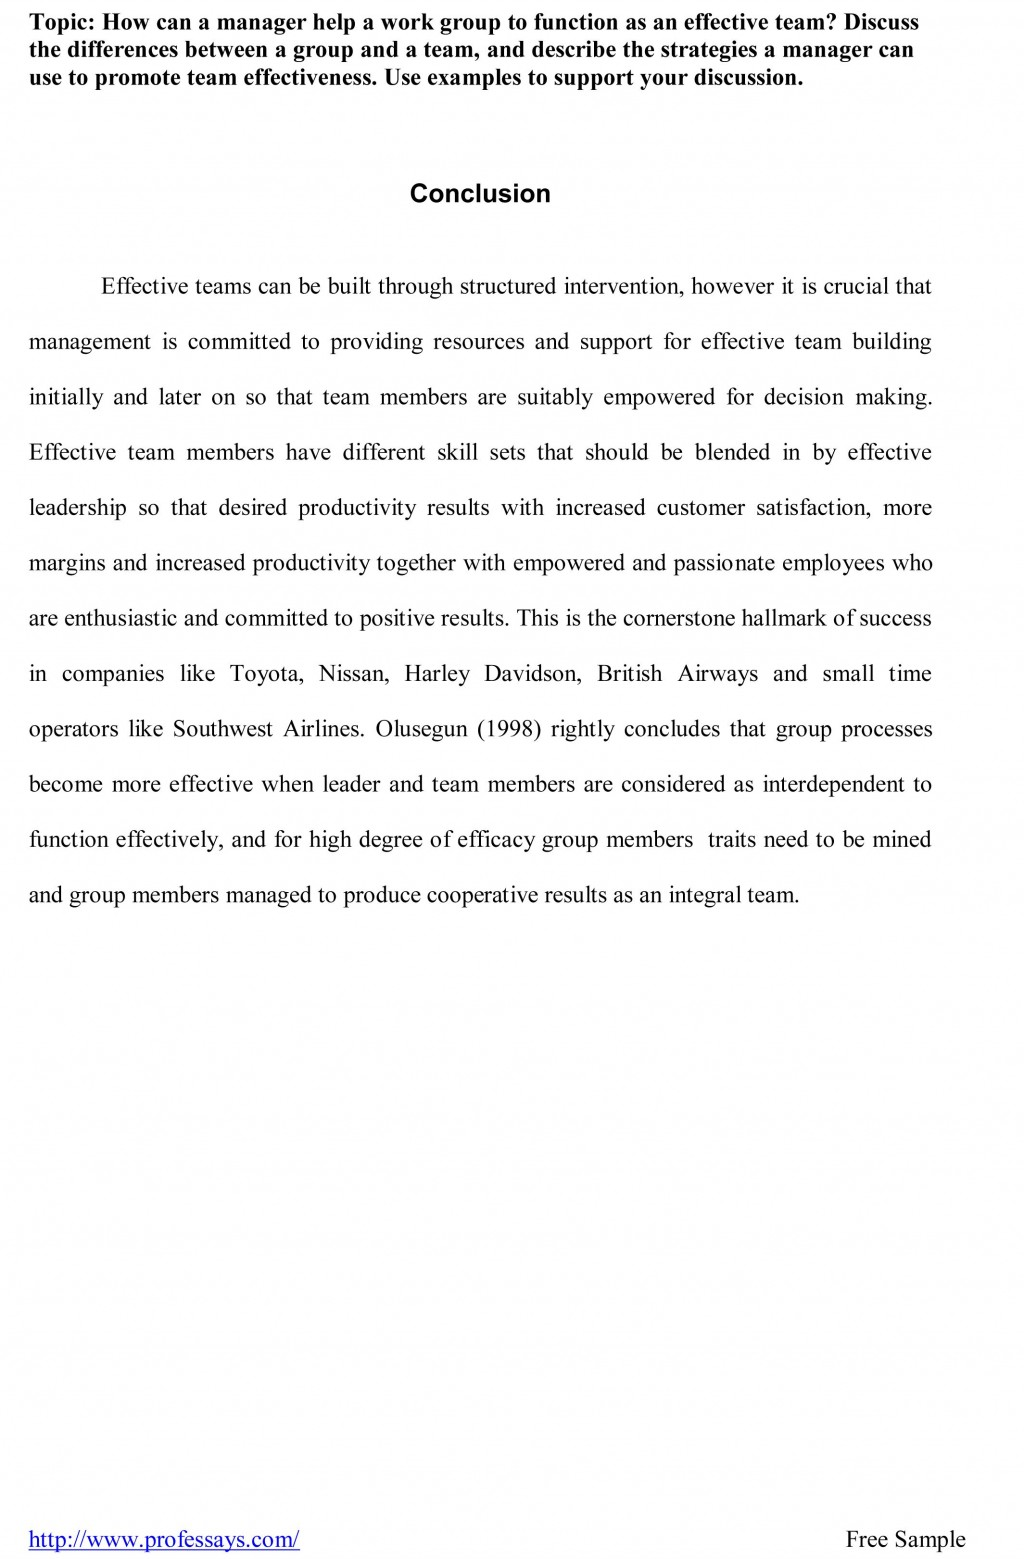 013 Death Penalty Research Paper Conclusion Exceptional Large